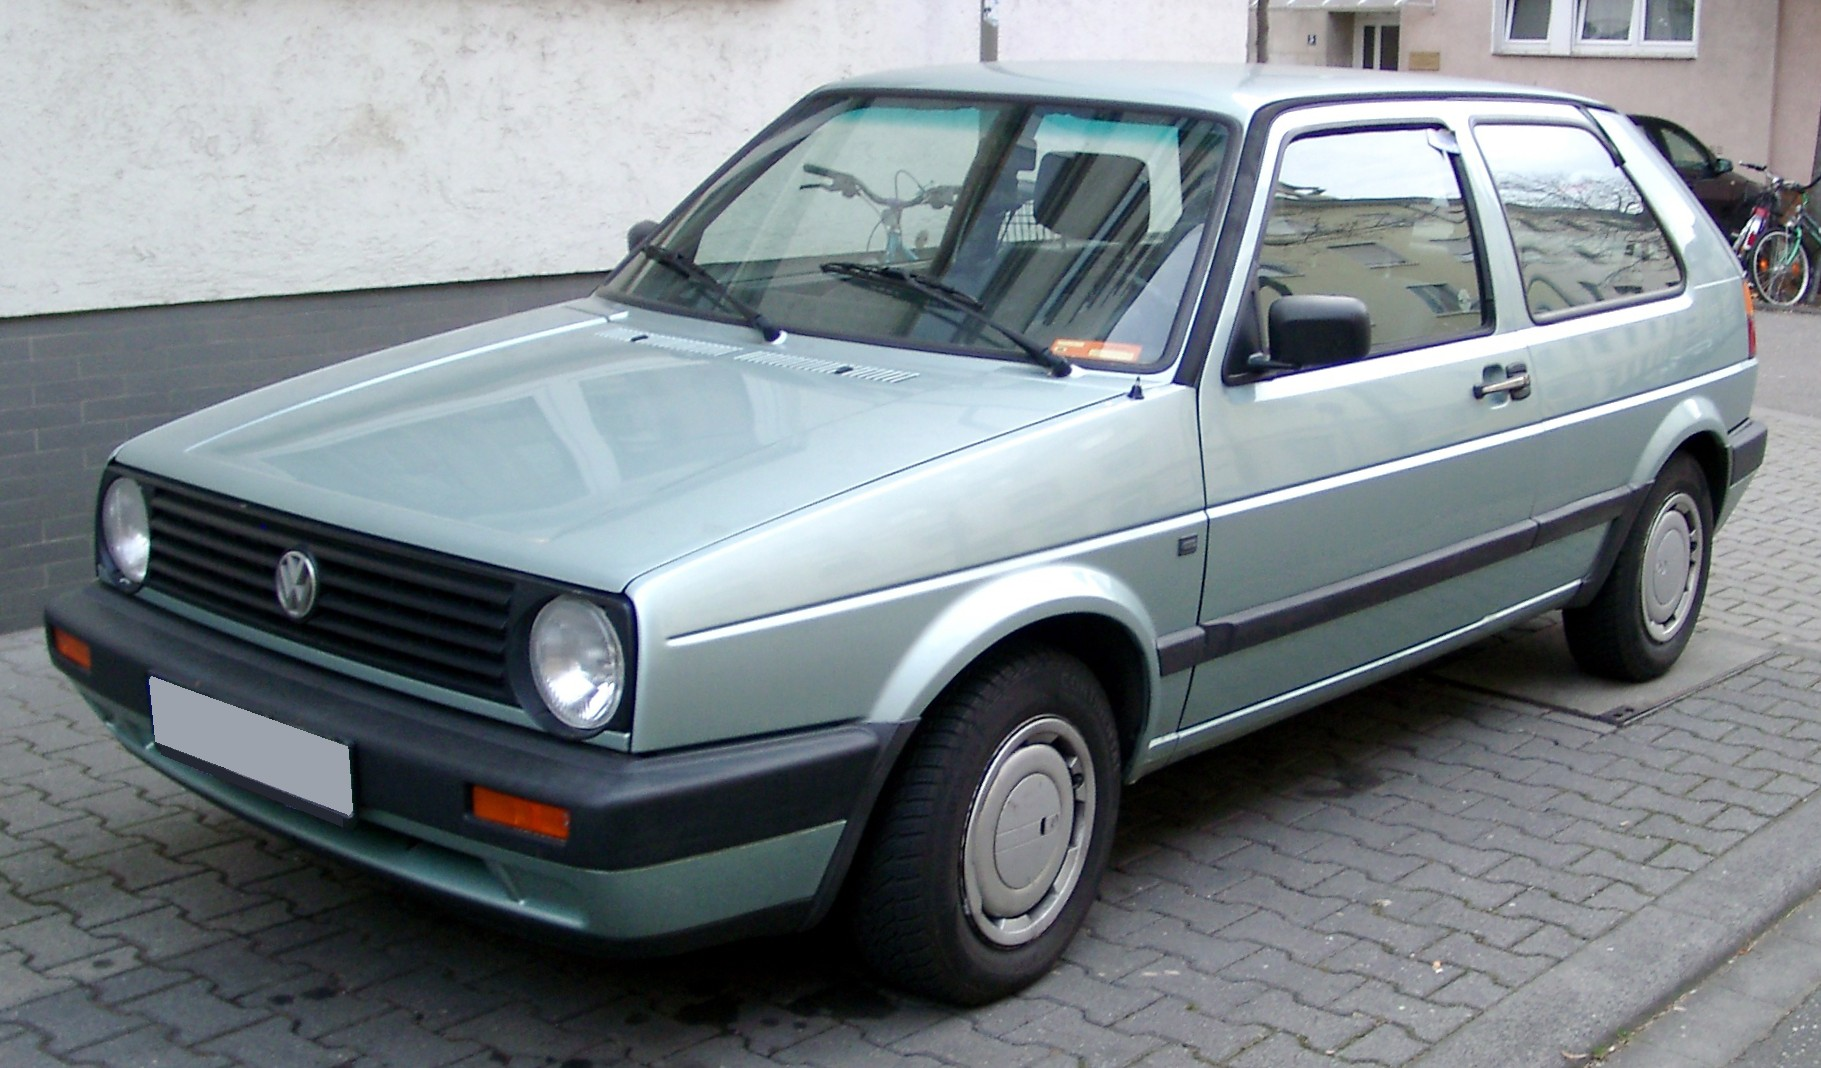 VW_Golf_II_front_20080206.jpg